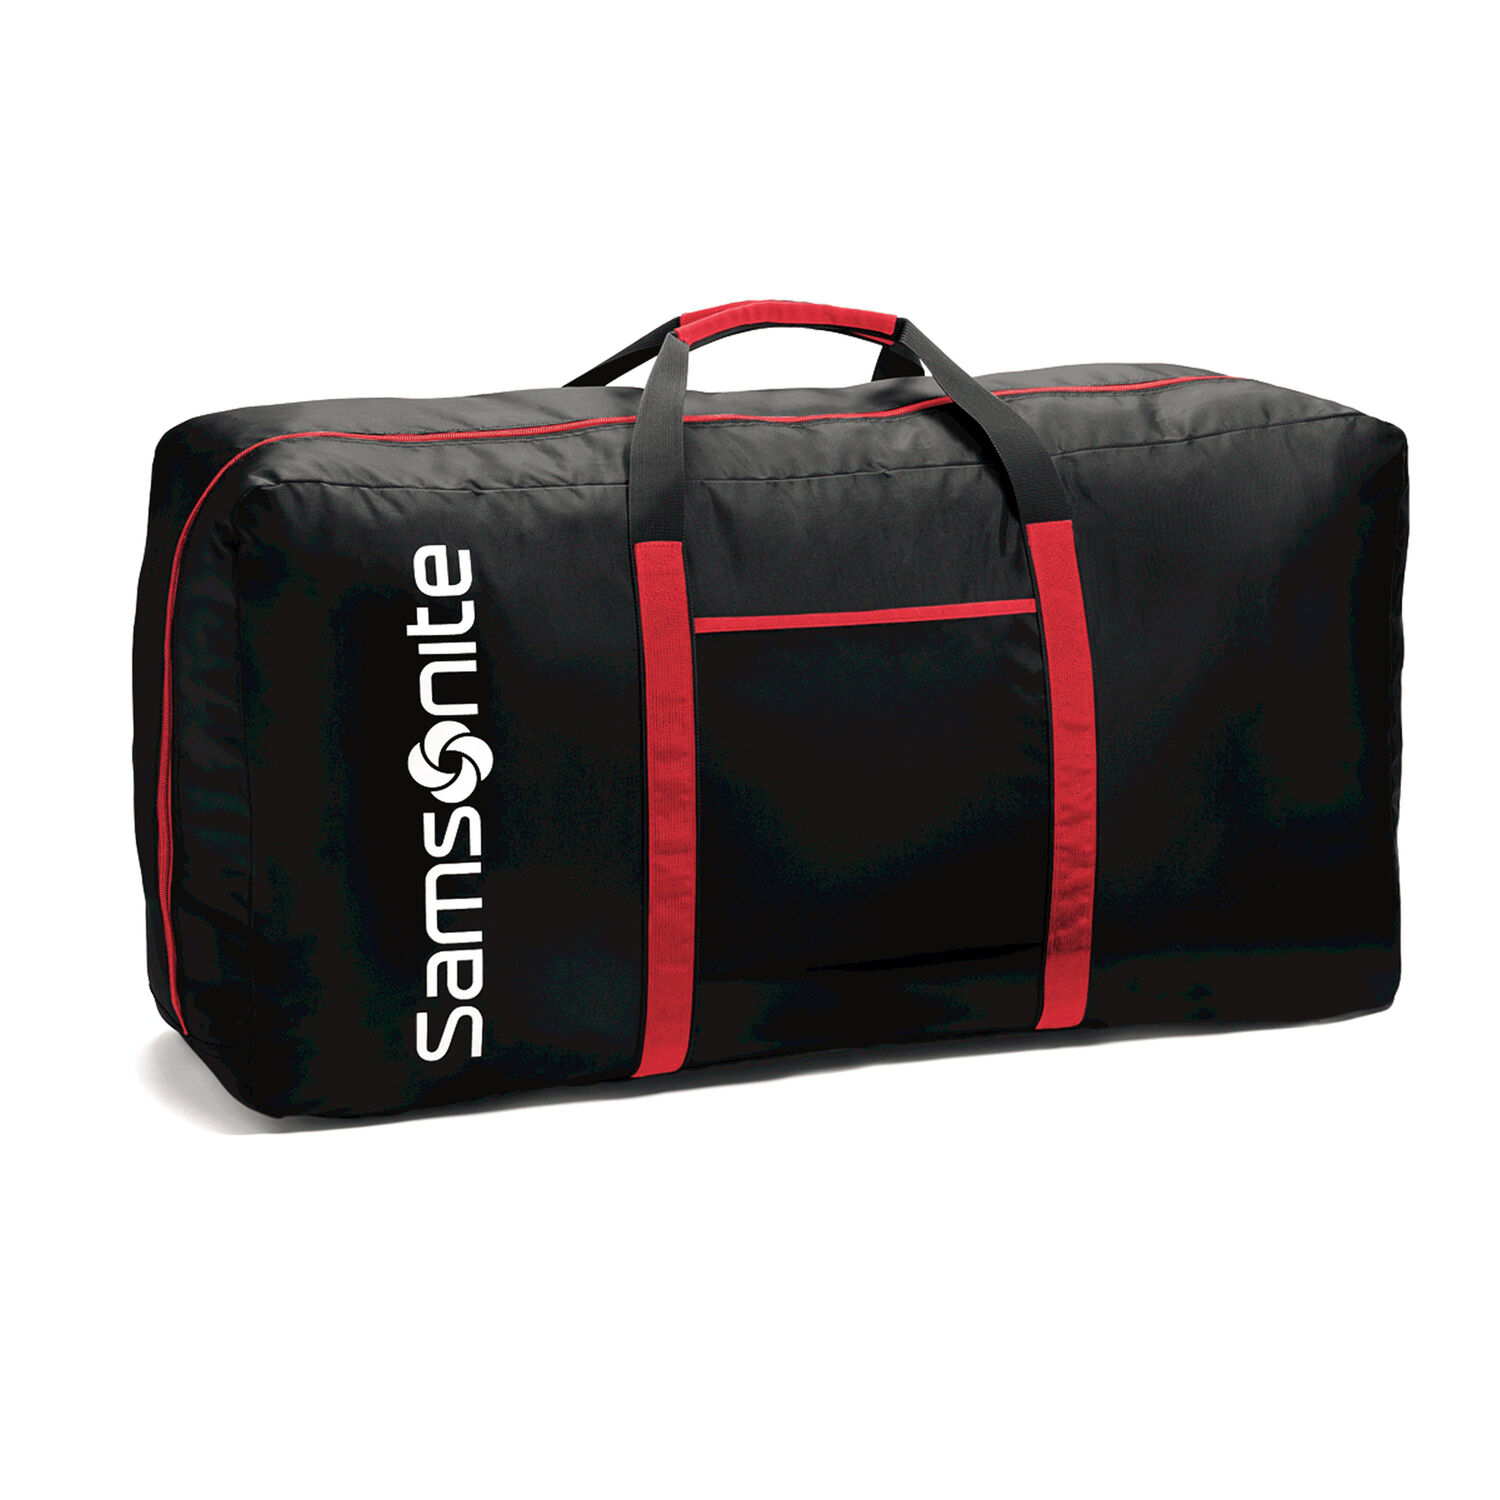 e0faca769edc Samsonite Tote-A-Ton Duffle Bag in the color Black.